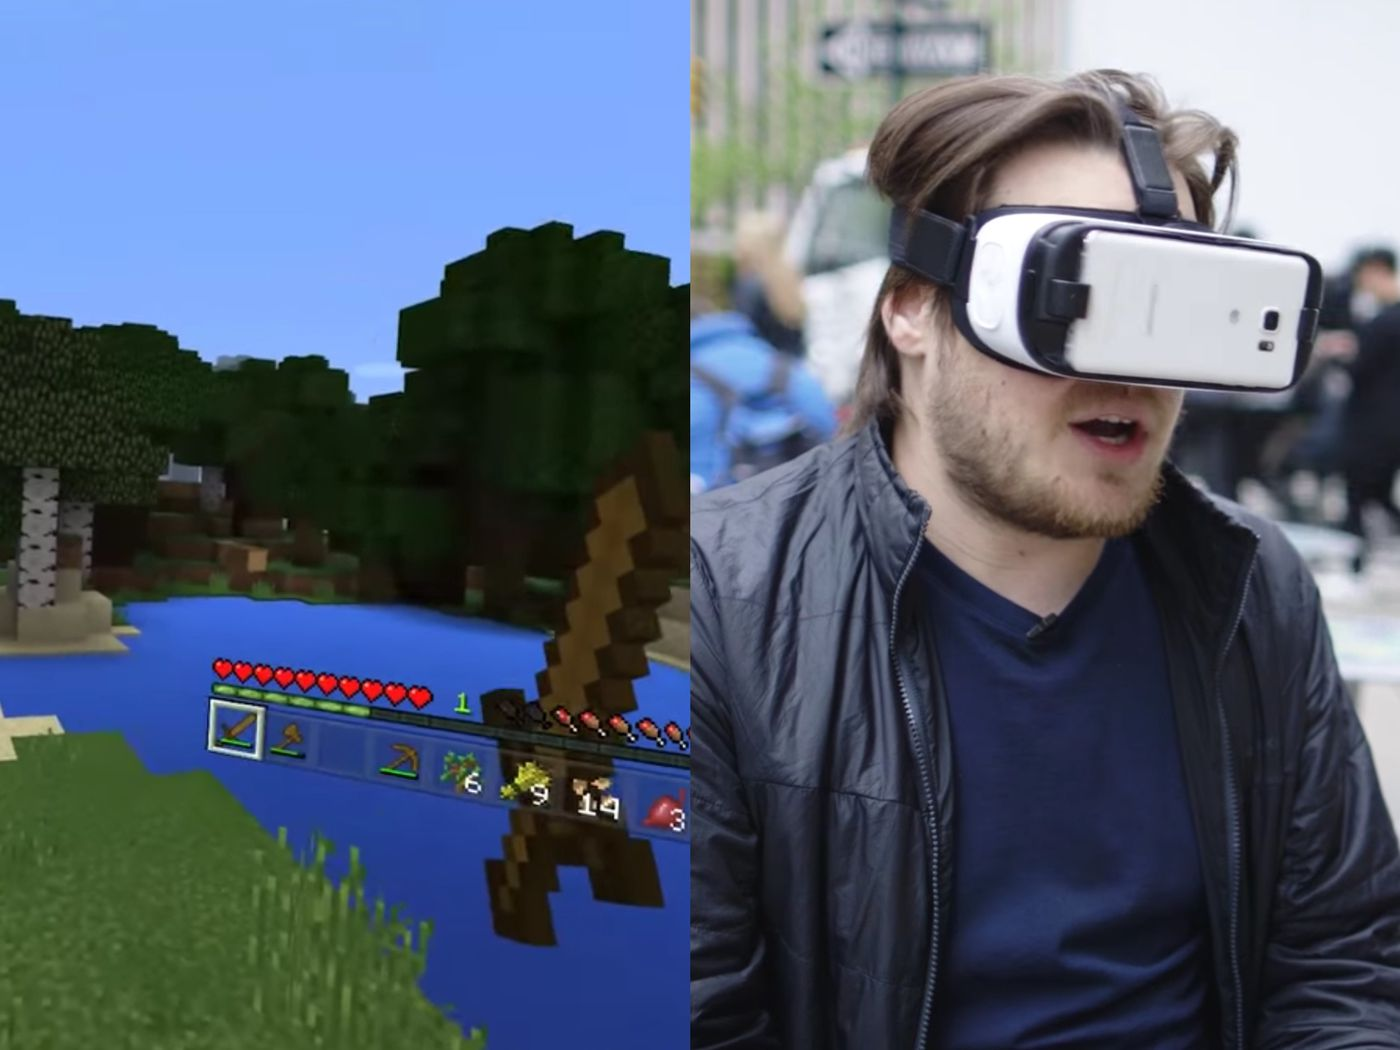 Minecraft is great in Gear VR - The Verge